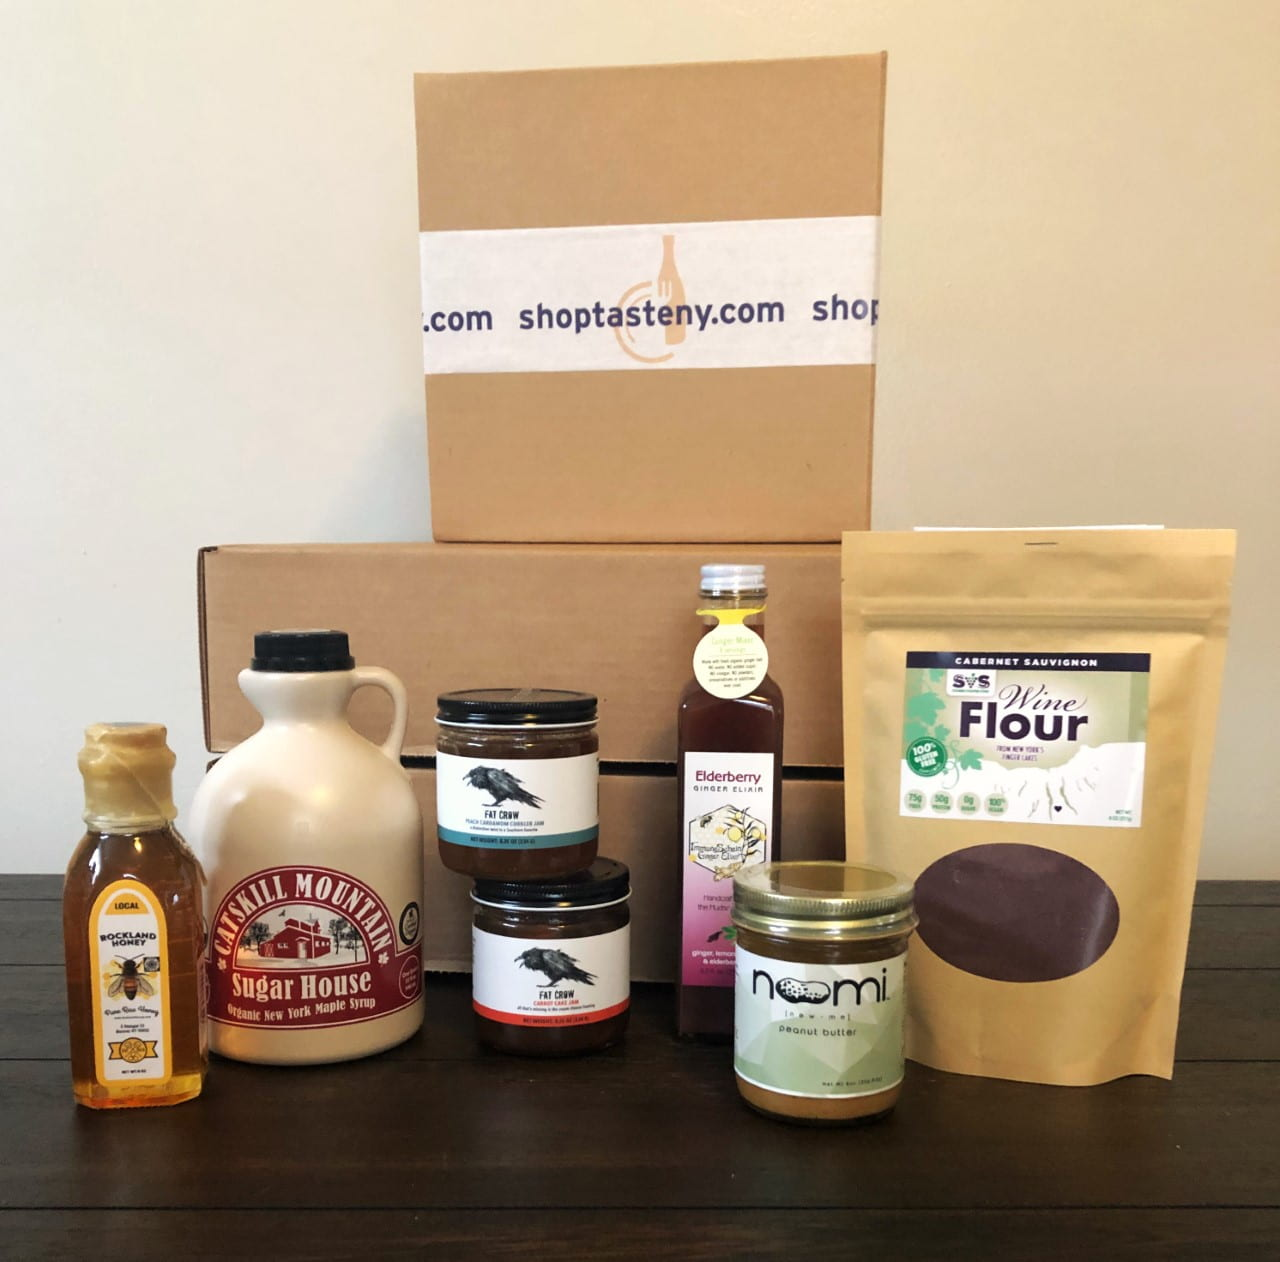 A selection of Shop Taste NY goods